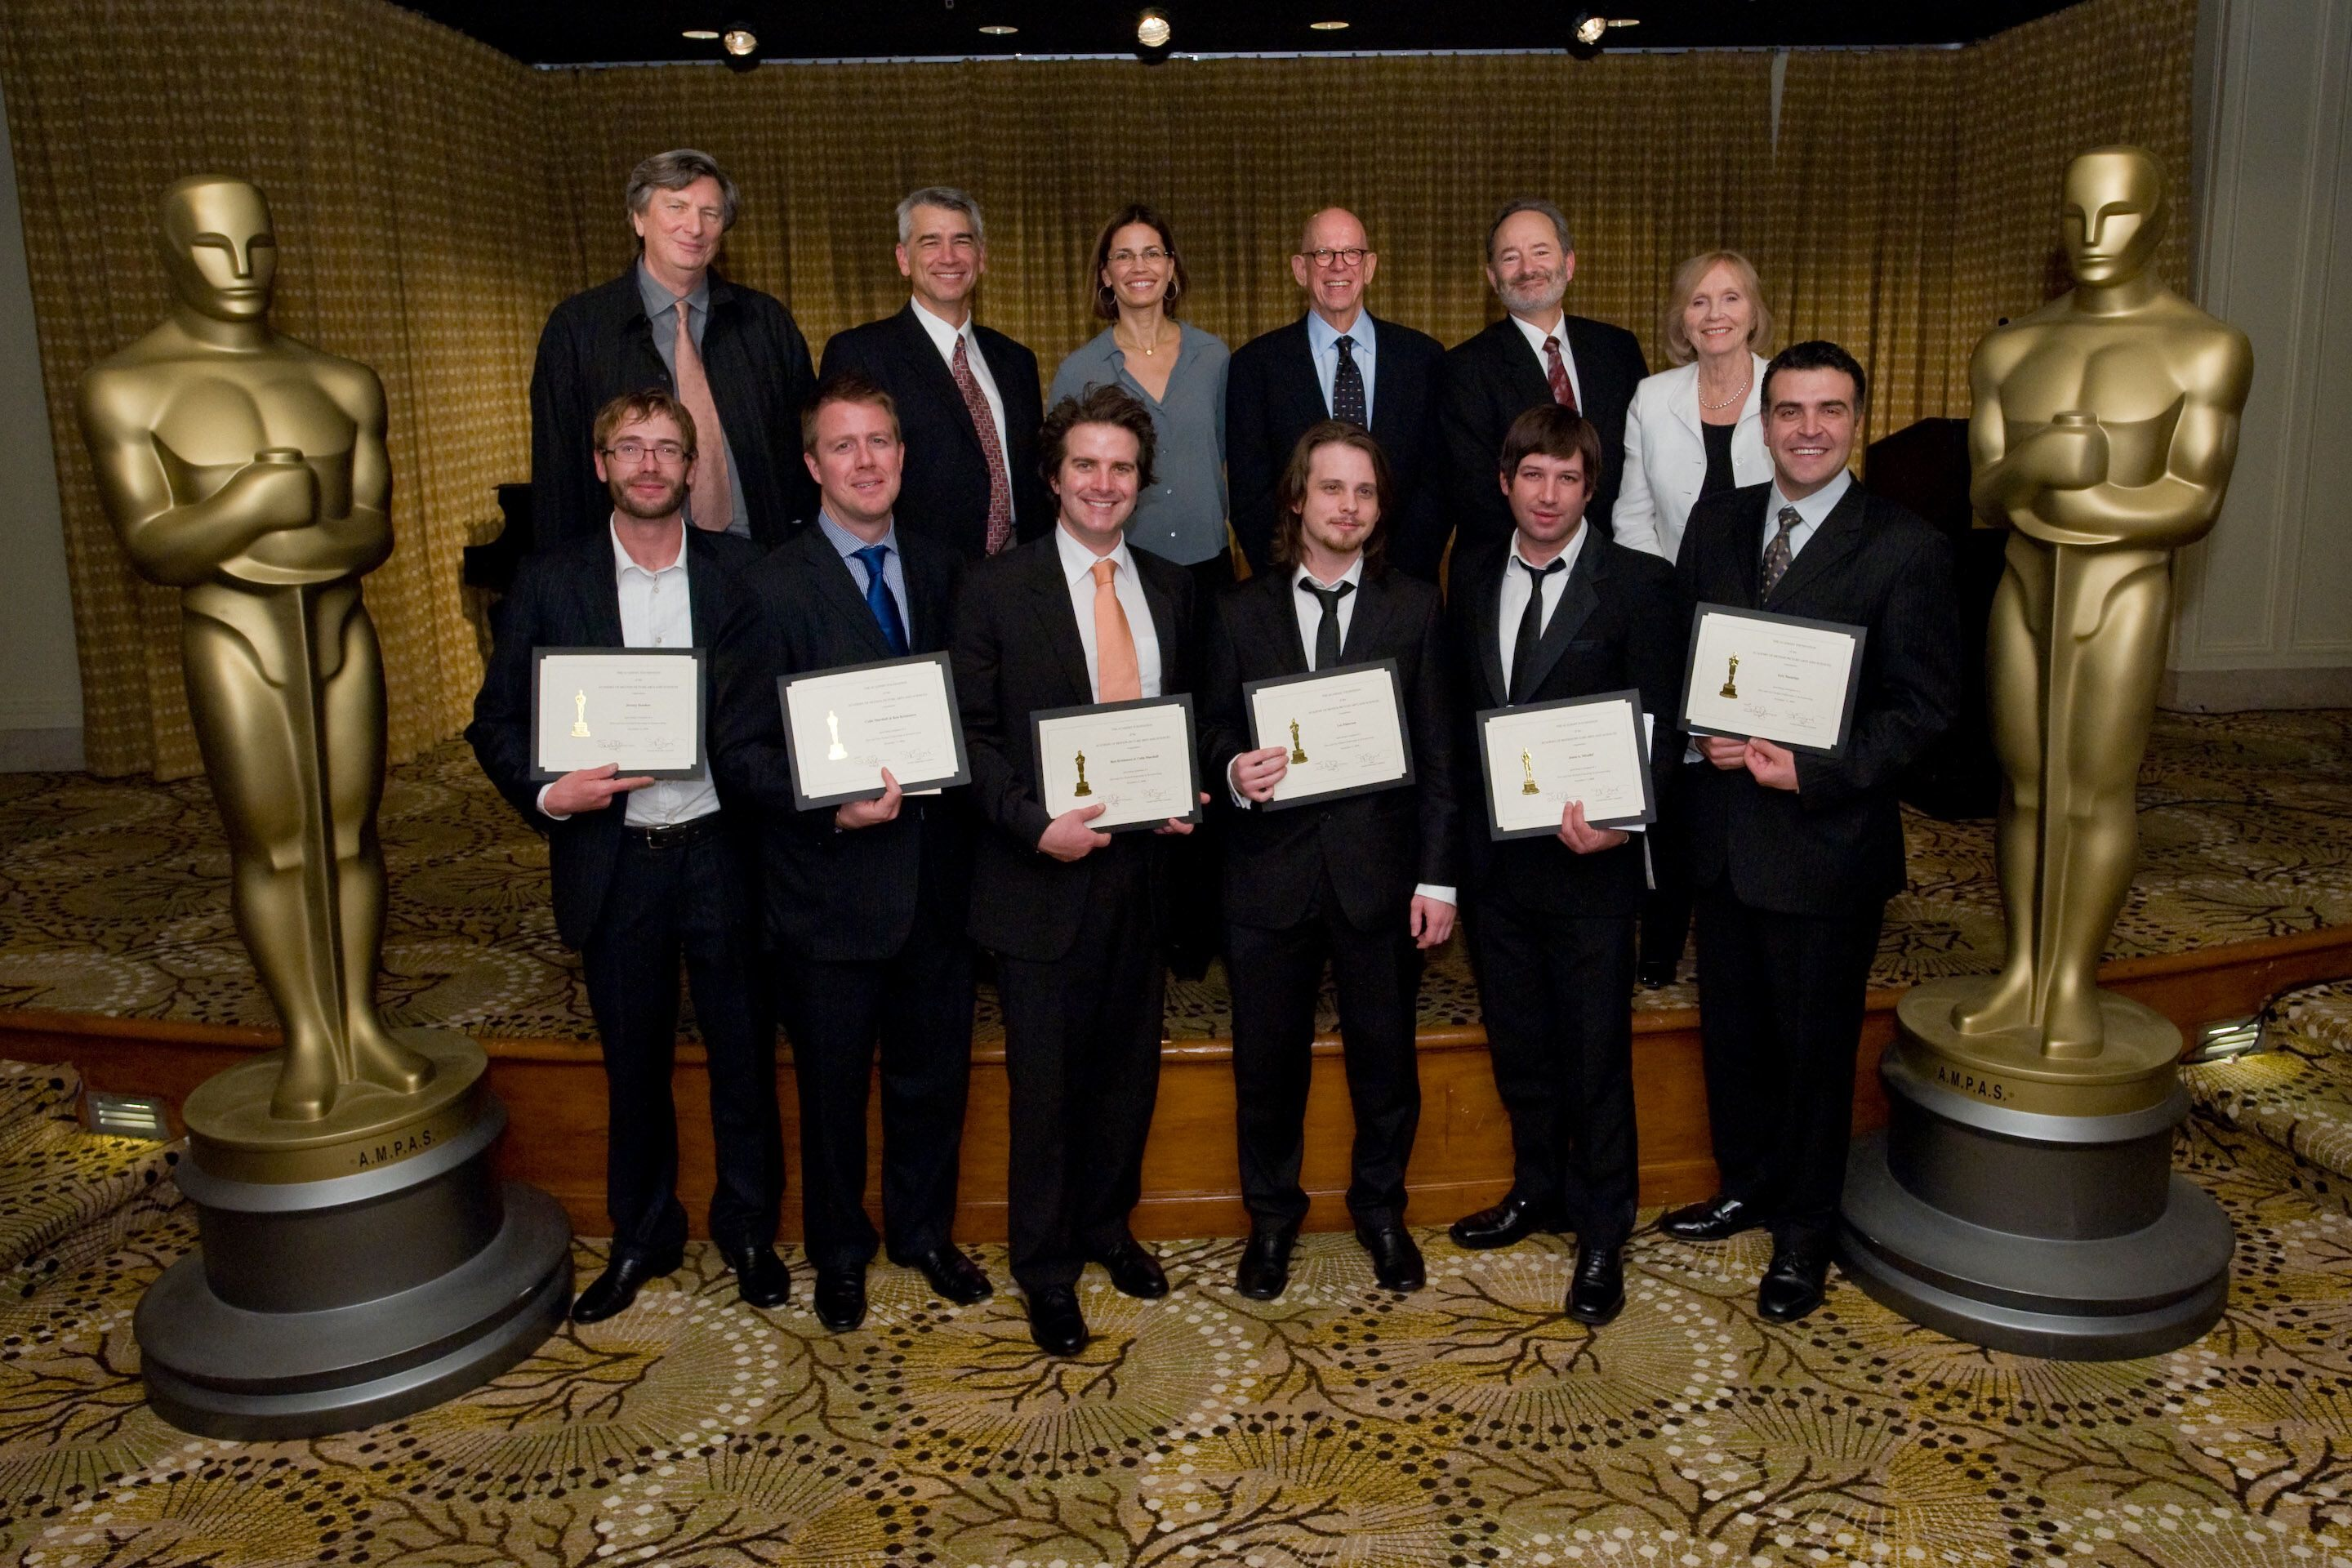 (left to right, front row) Jeremy Bandow, Colin Marshall, Ken Kristensen, Lee Patterson, Jason Miscallef, Eric Nazarian. Nicholl Fellowship Committee: (back row) John Bailey; David Nicksay;  Susannah Grant, Robert Shapiro, Peter Samuelson, Eva Marie Saint